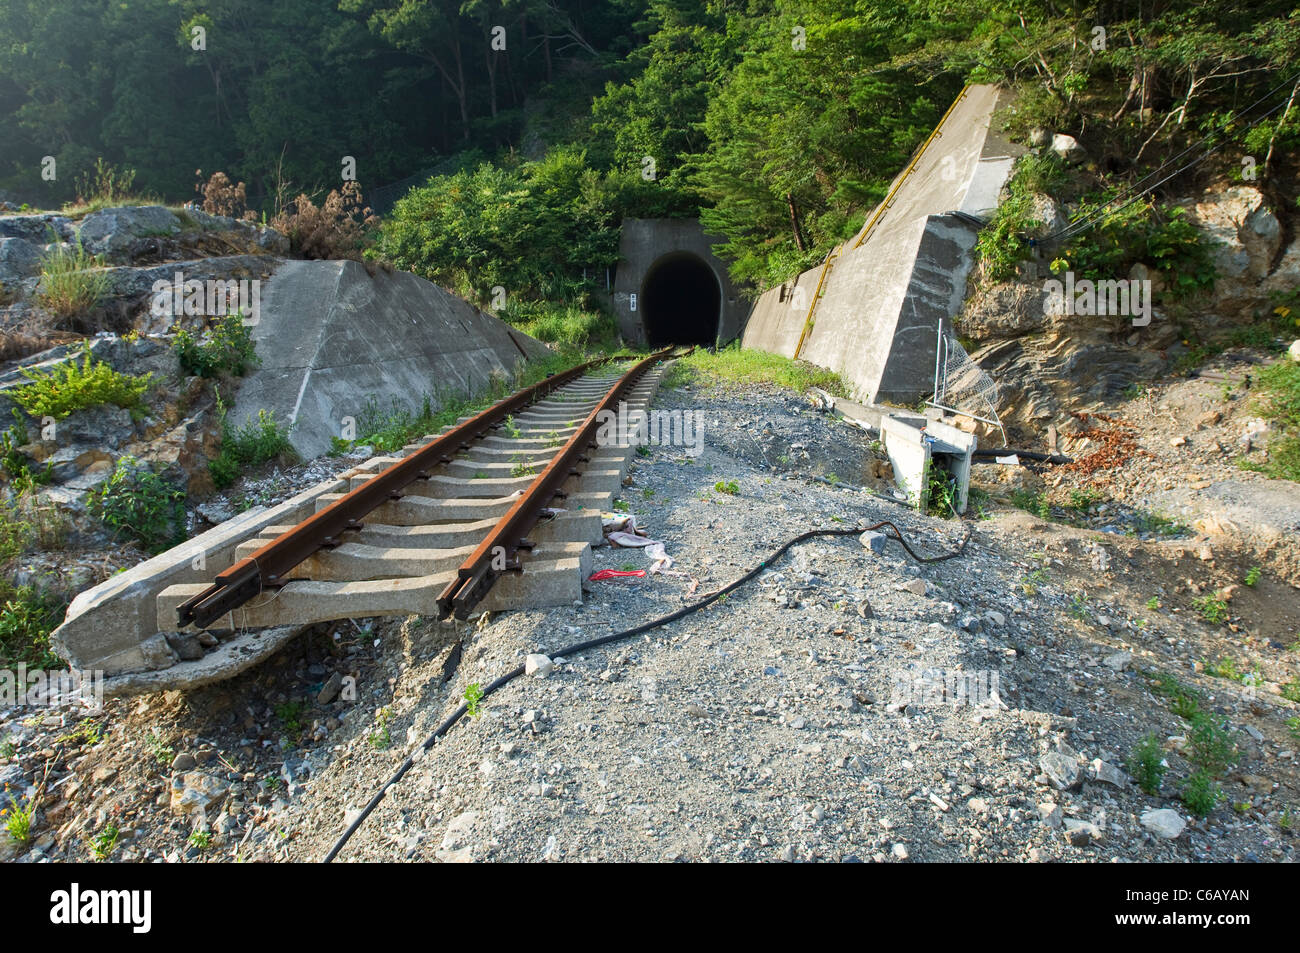 Railway tracks shifted by the force of a tsunami - Stock Image